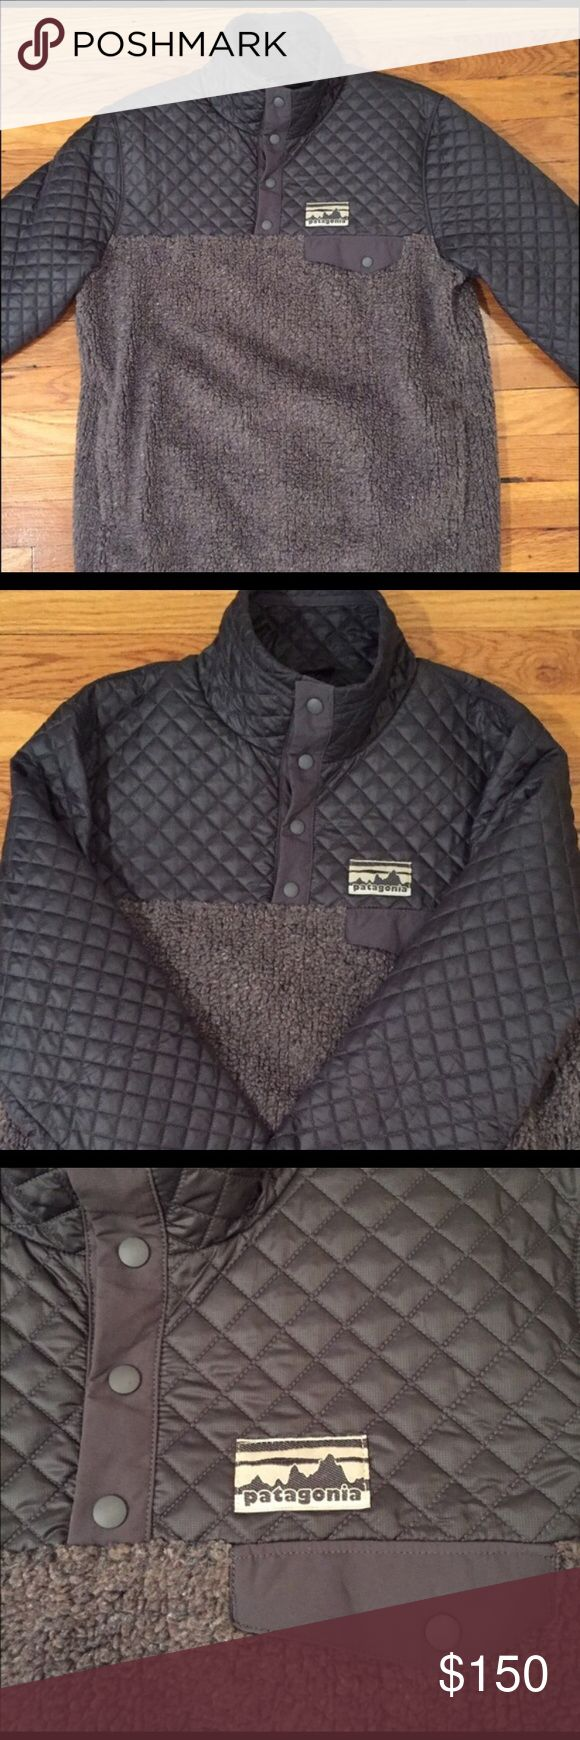 Vintage Patagonia Fleece! Authentic, vintage, worn once, very clean with no signs of wear! Such a cute and different Patagonia! It is dark grey and a fleece pullover :) Patagonia Jackets & Coats